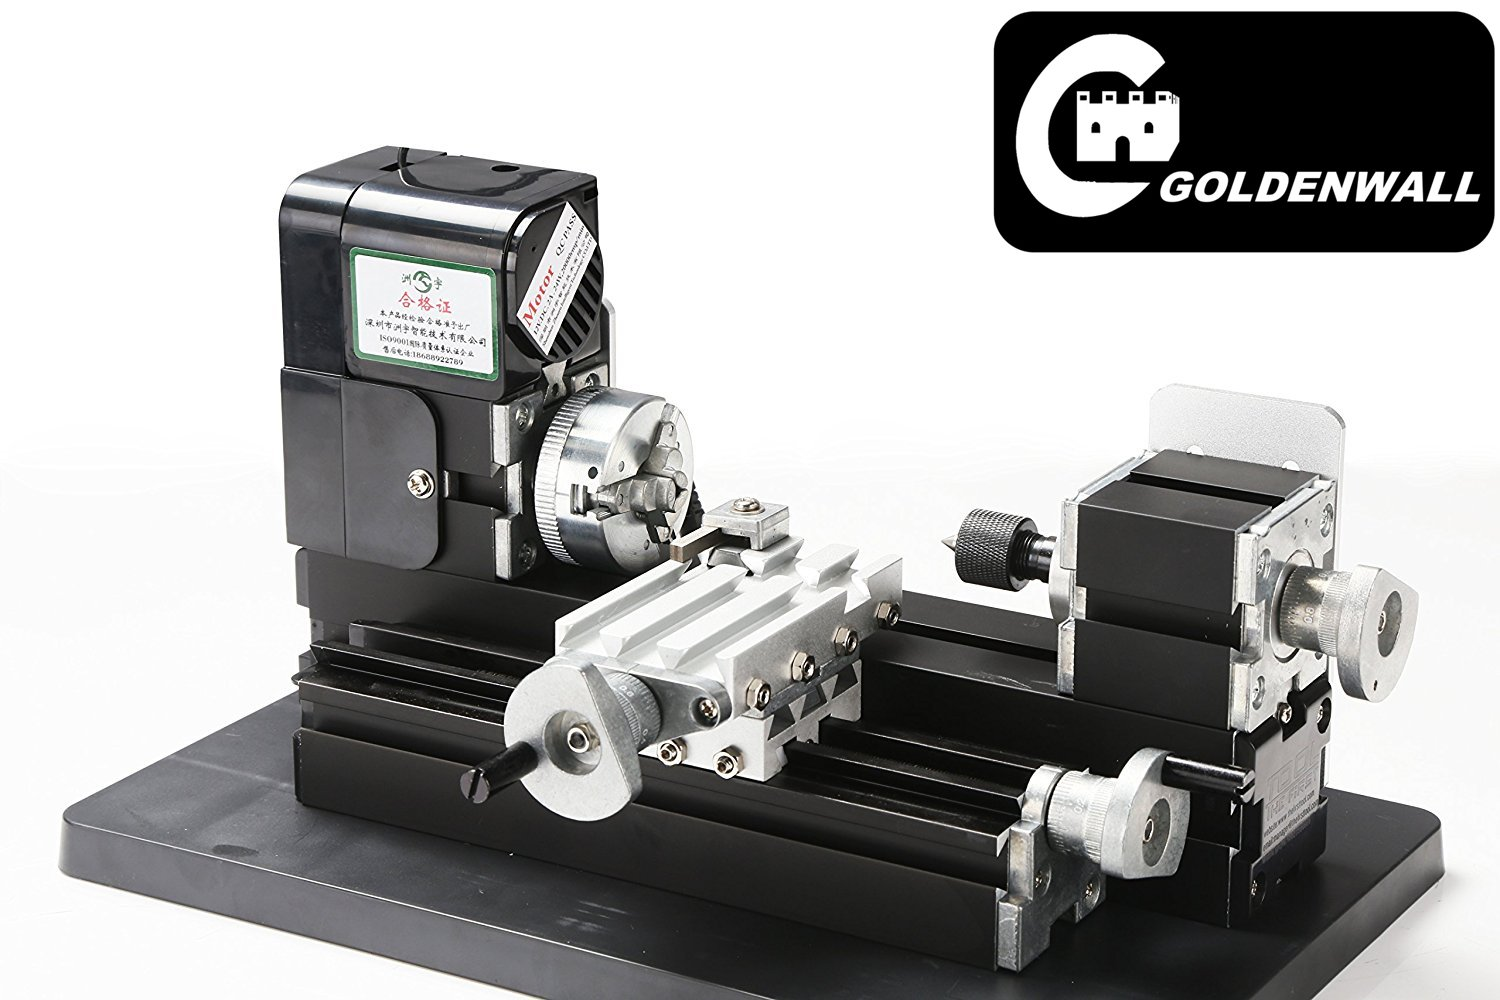 Z20002M Mini DIY Machine Metal Mini Lathe 24W 20000rpm didactical metal lathe machine for students DIY Works best gift for Chrildren's Gift by CGoldenWall (Image #1)